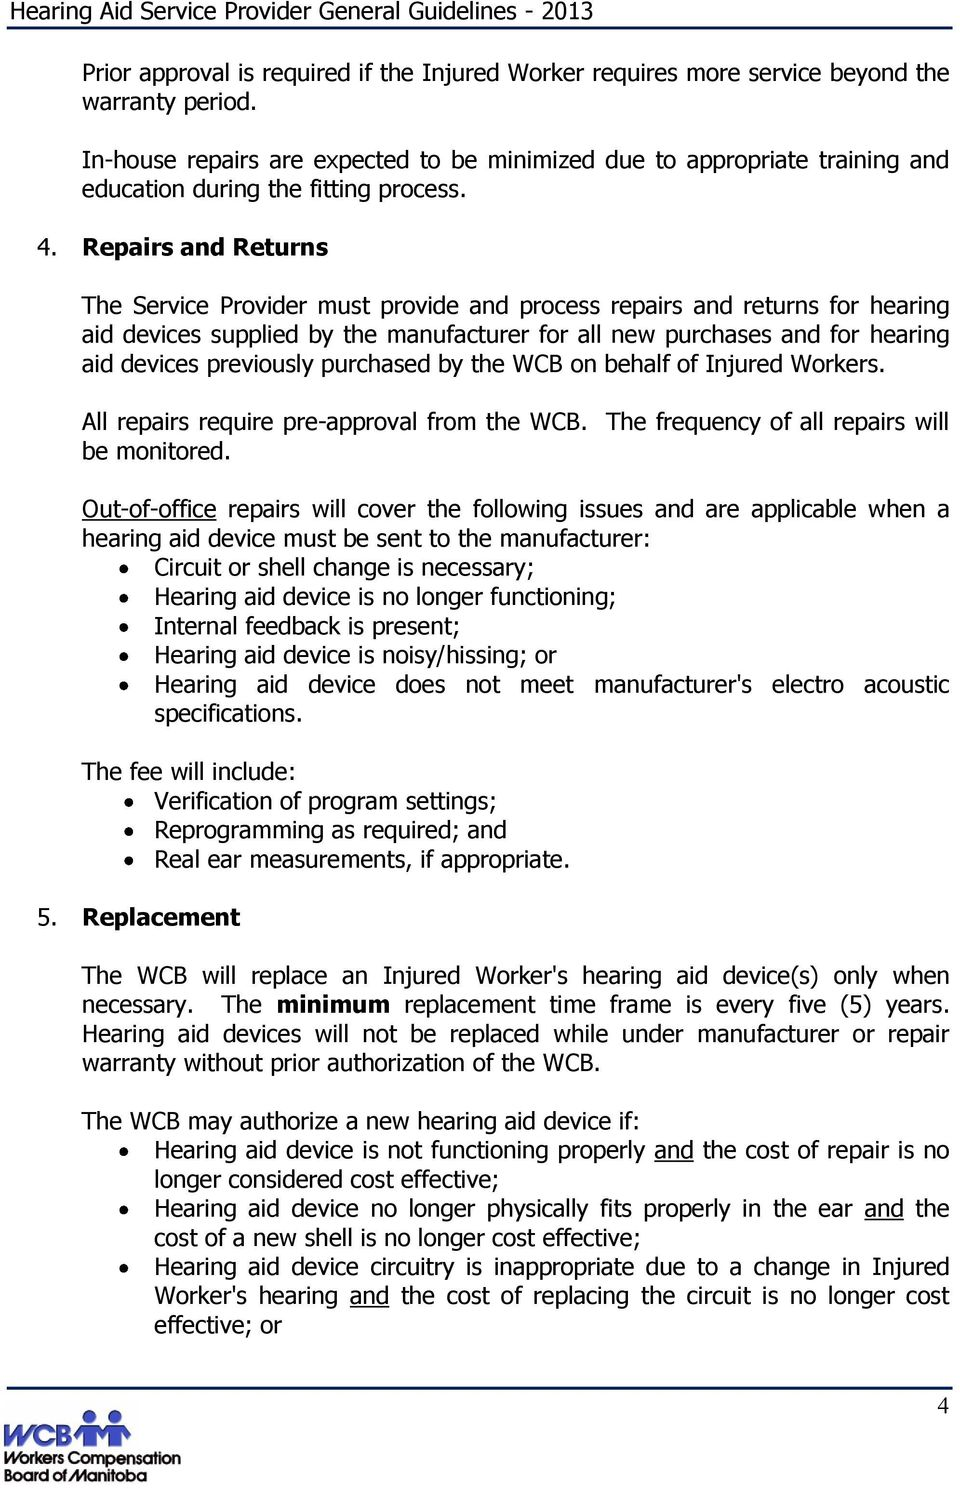 Hearing Aid Service Provider General Guidelines Pdf Circuitry Repairs And Returns The Must Provide Process For